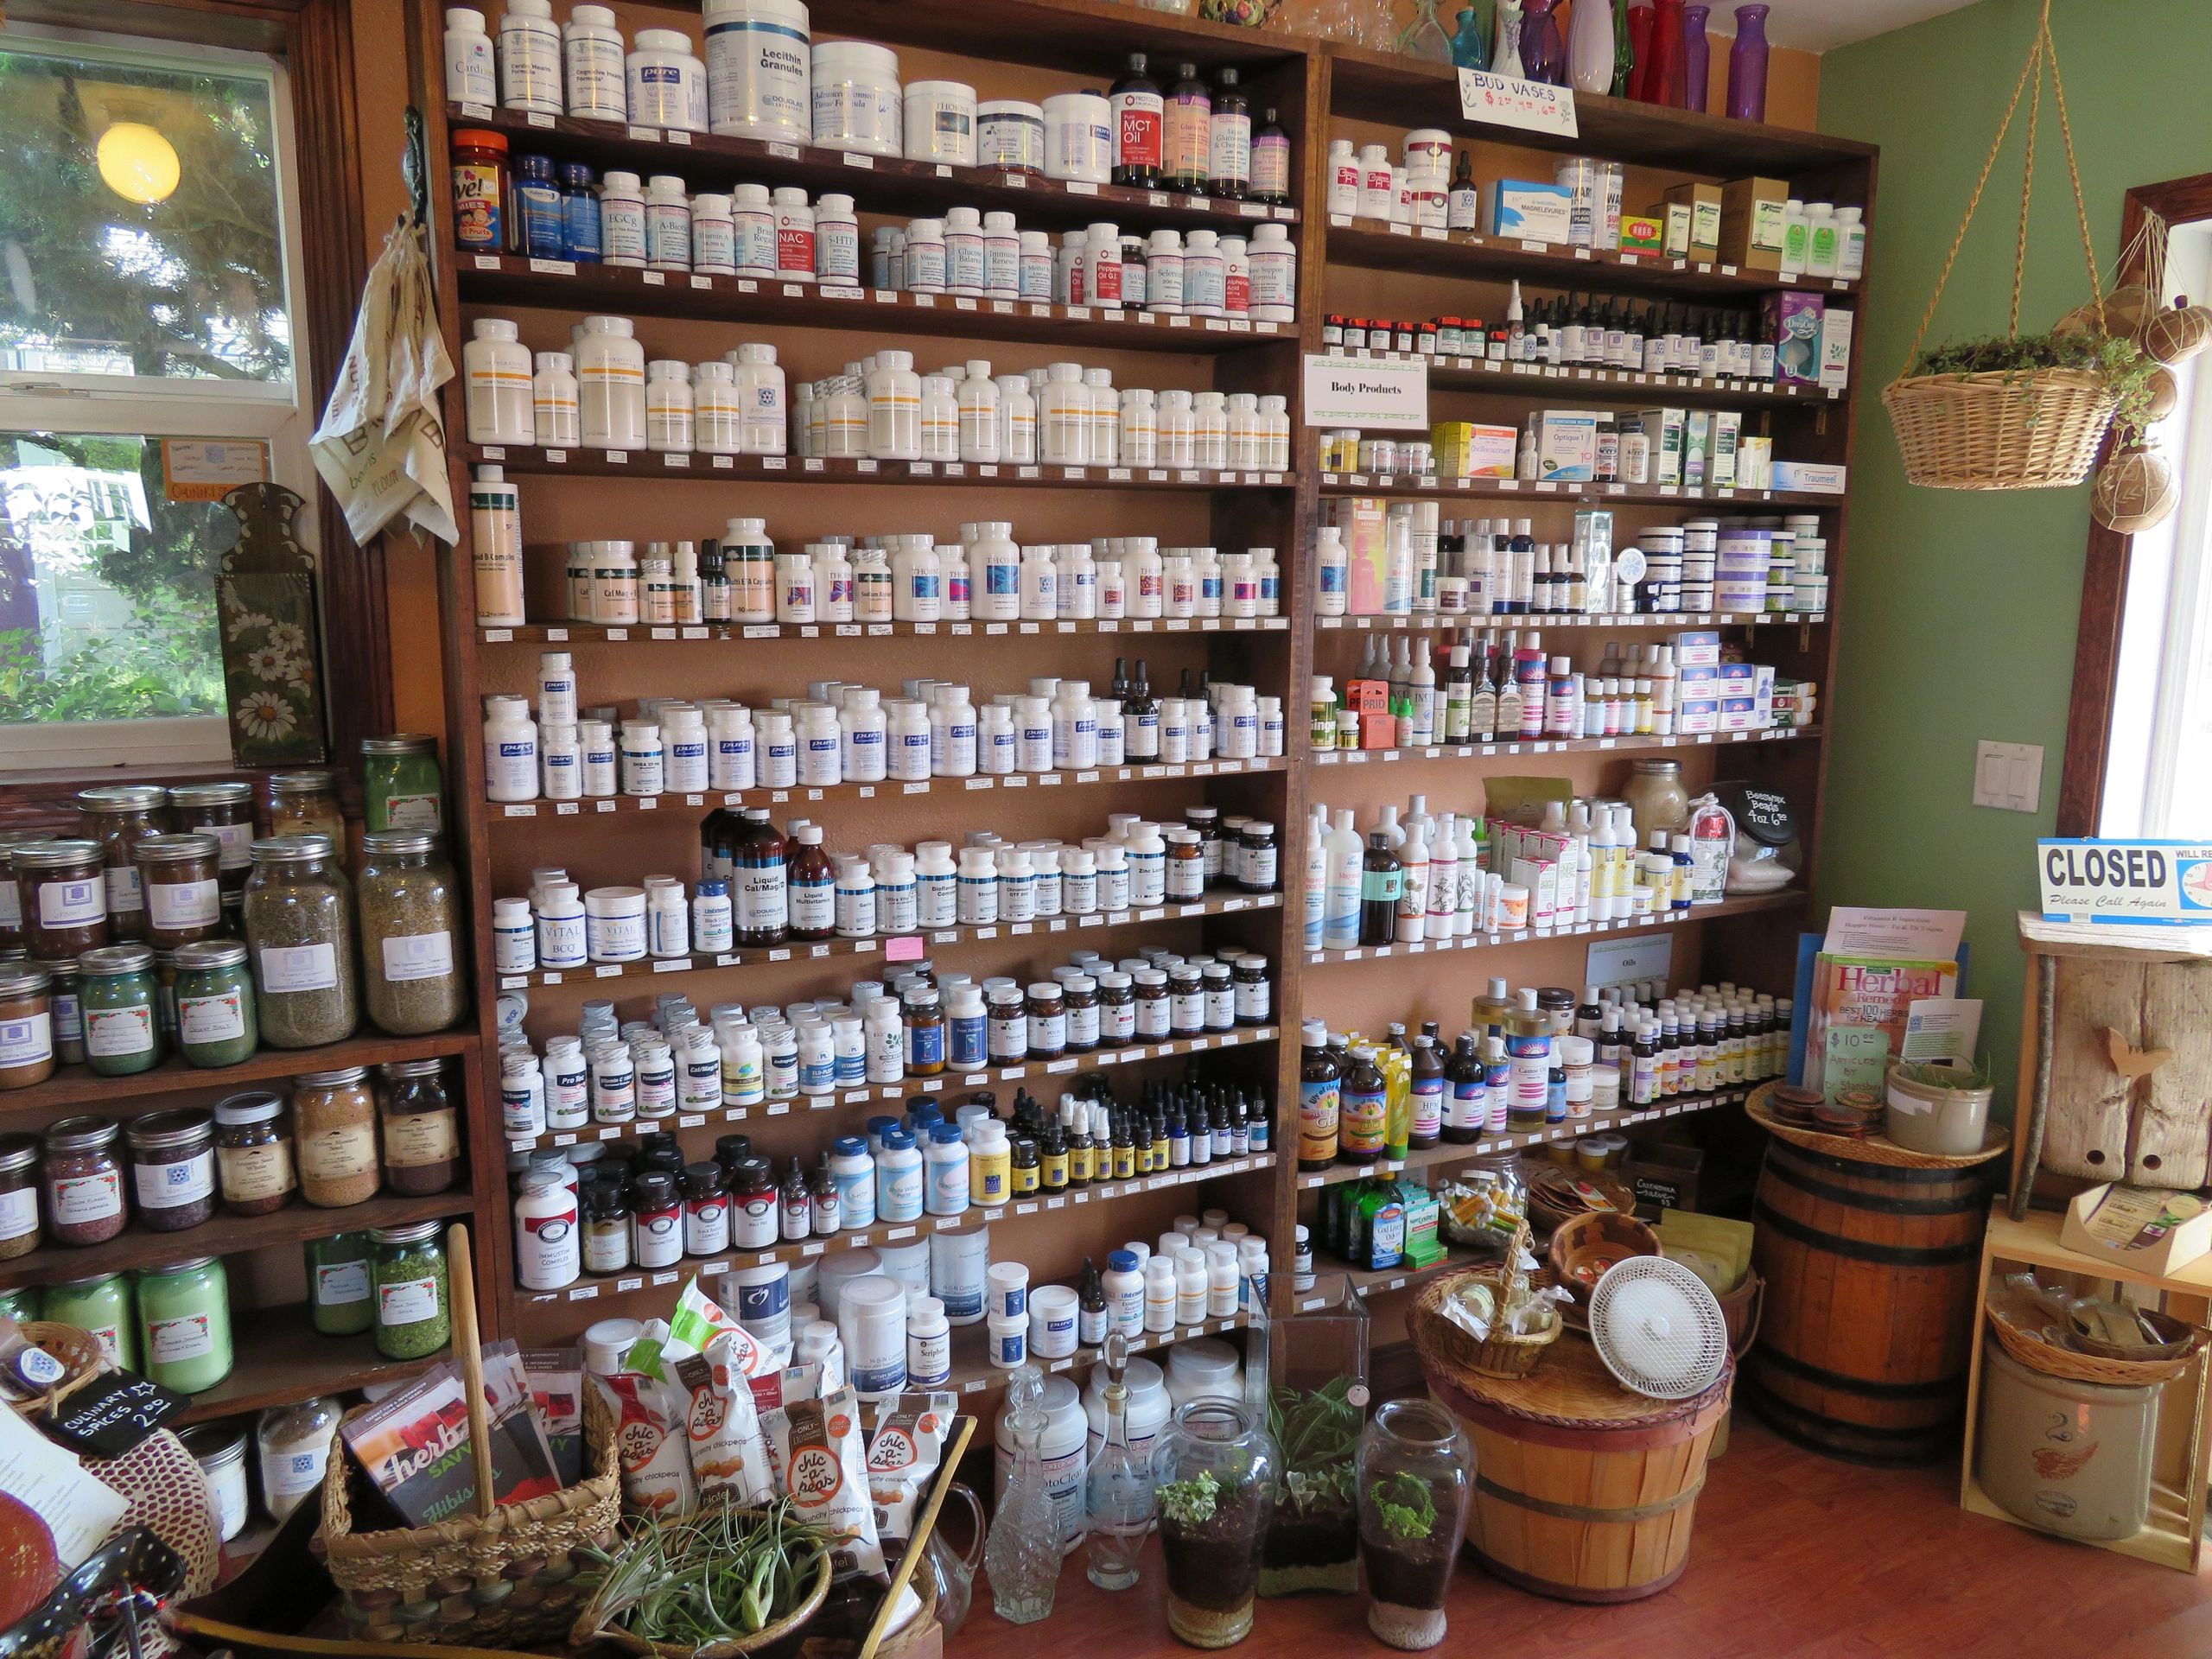 BGhealingarts apothecary battle ground natural goods herbal medicine essential oils pharmacy